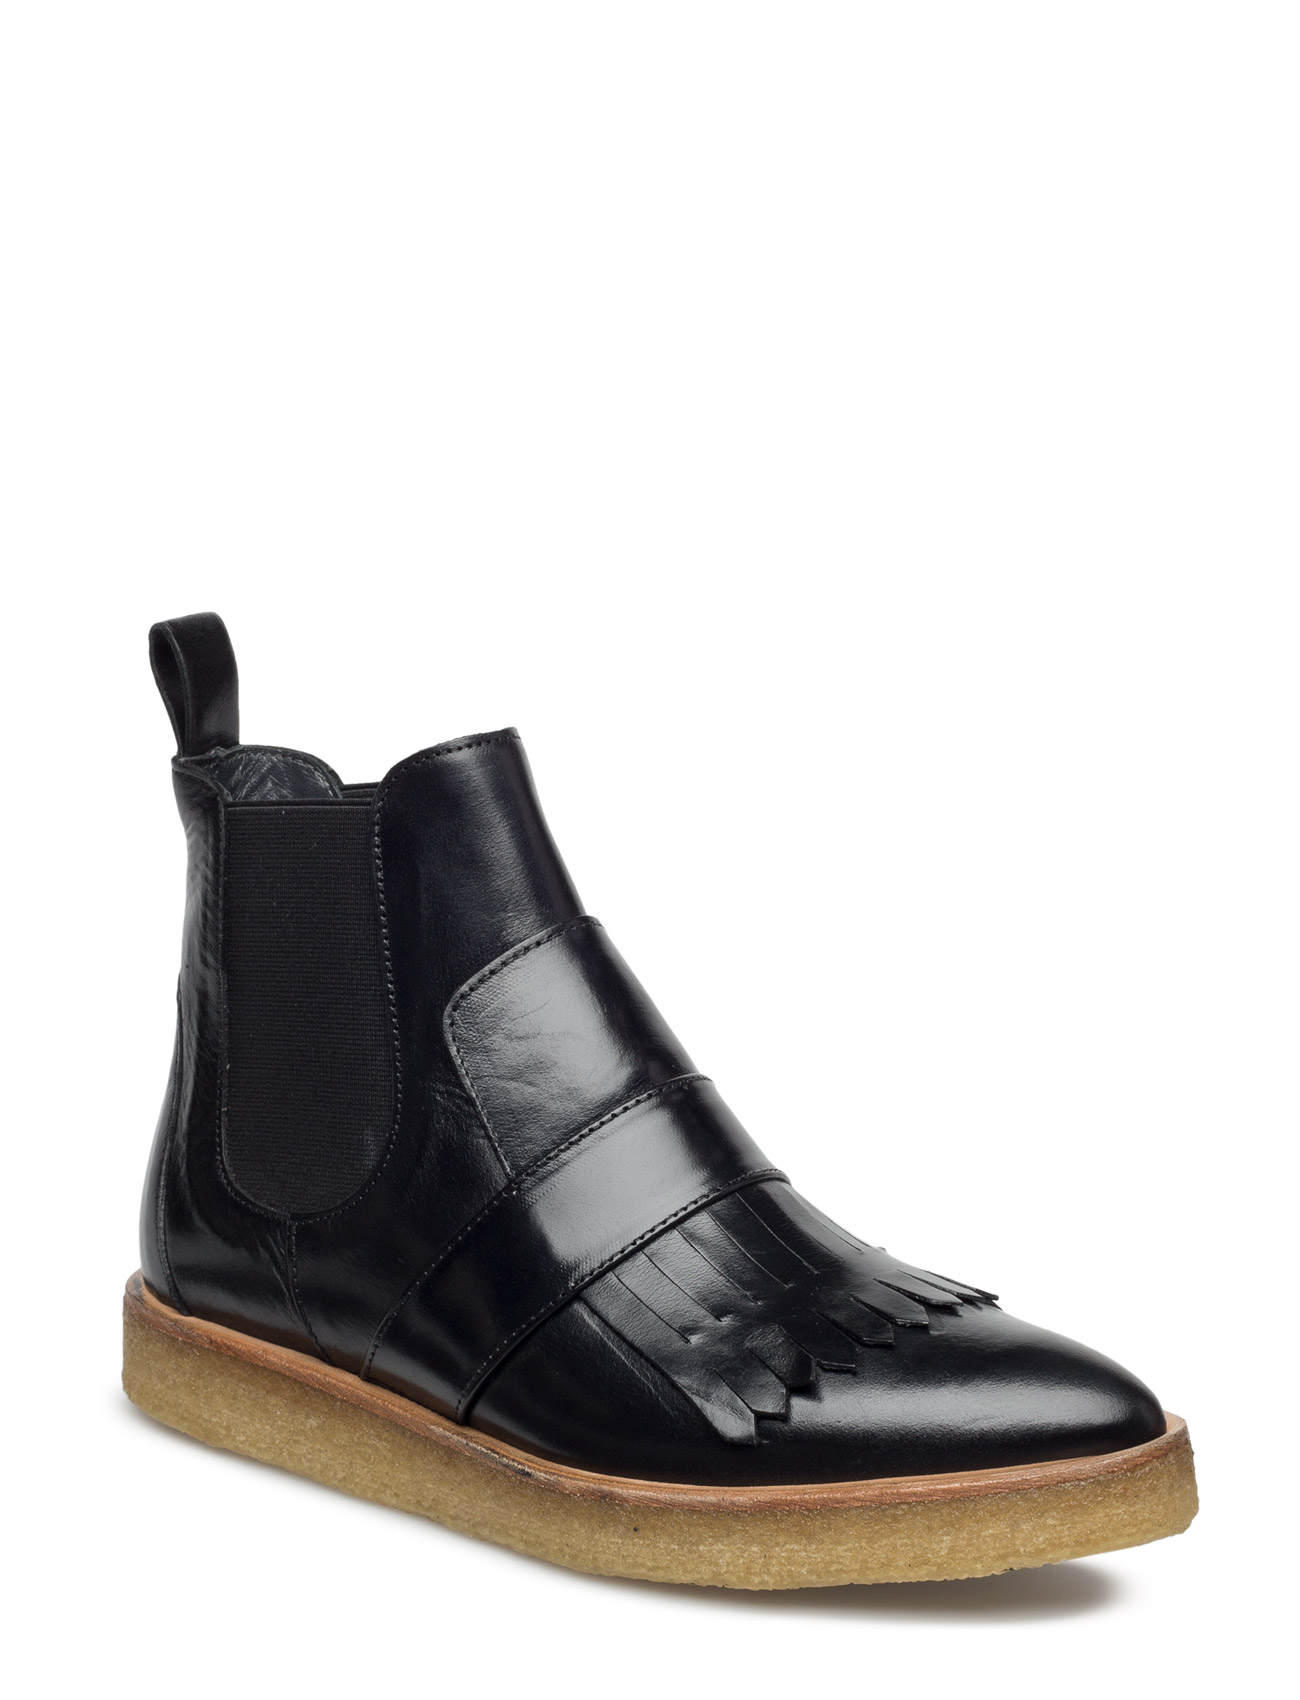 Image of Booties - Flat - With Elastic Shoes Boots Chelsea Boots Ankle Boot - Flat Sort ANGULUS (3452077983)